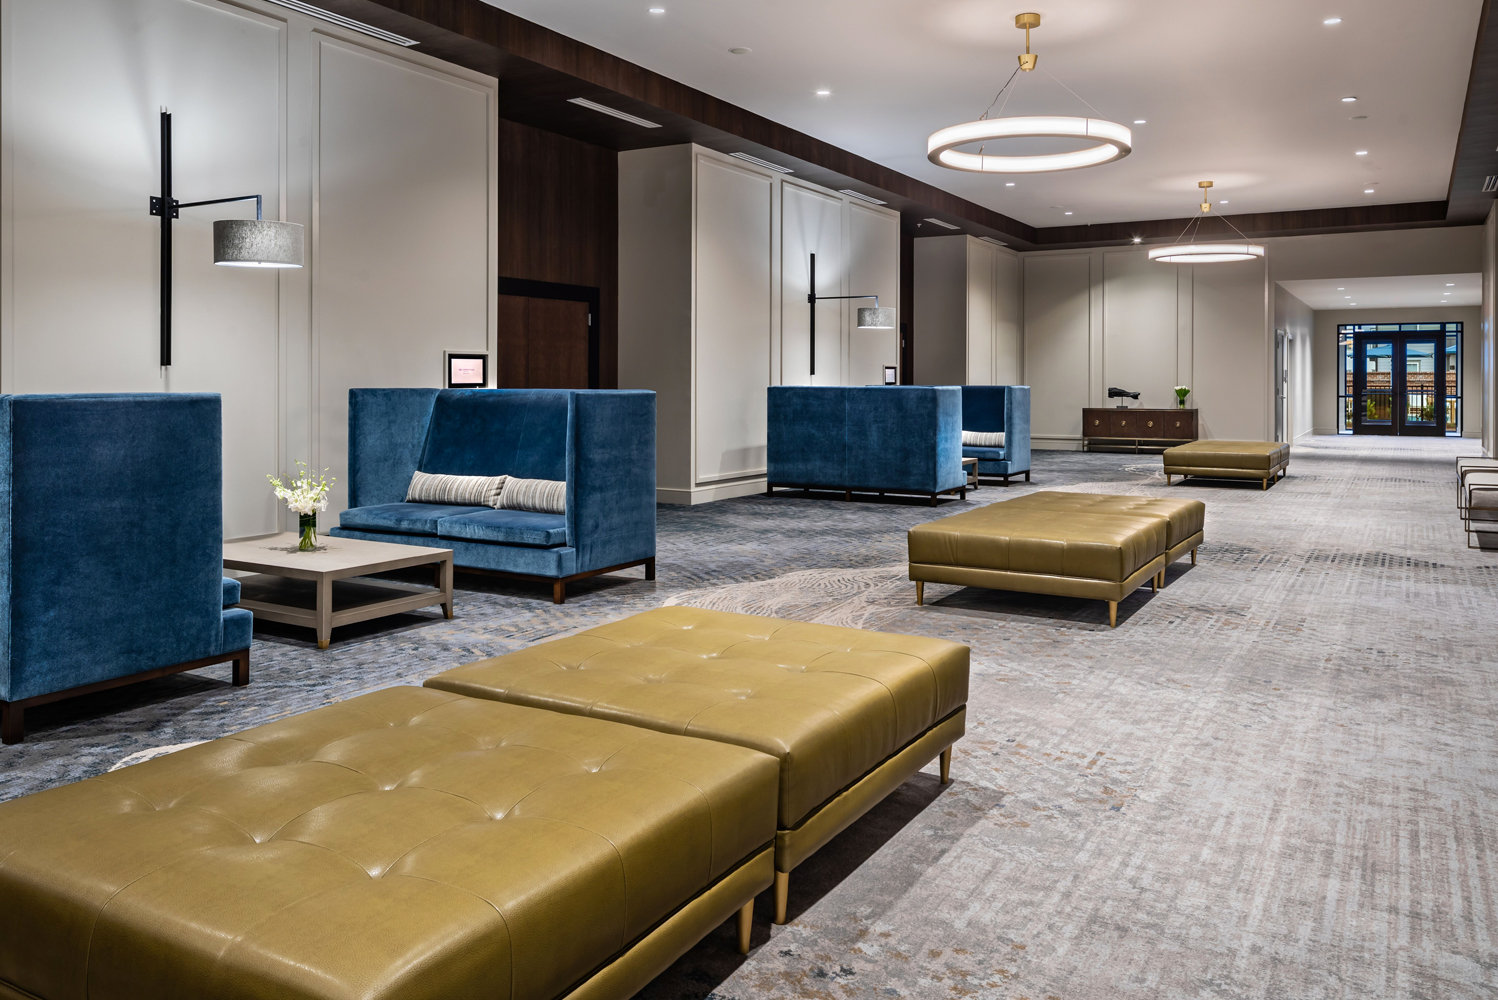 Additionally, there is pre-function space and four meeting rooms that can be used for breakout space.